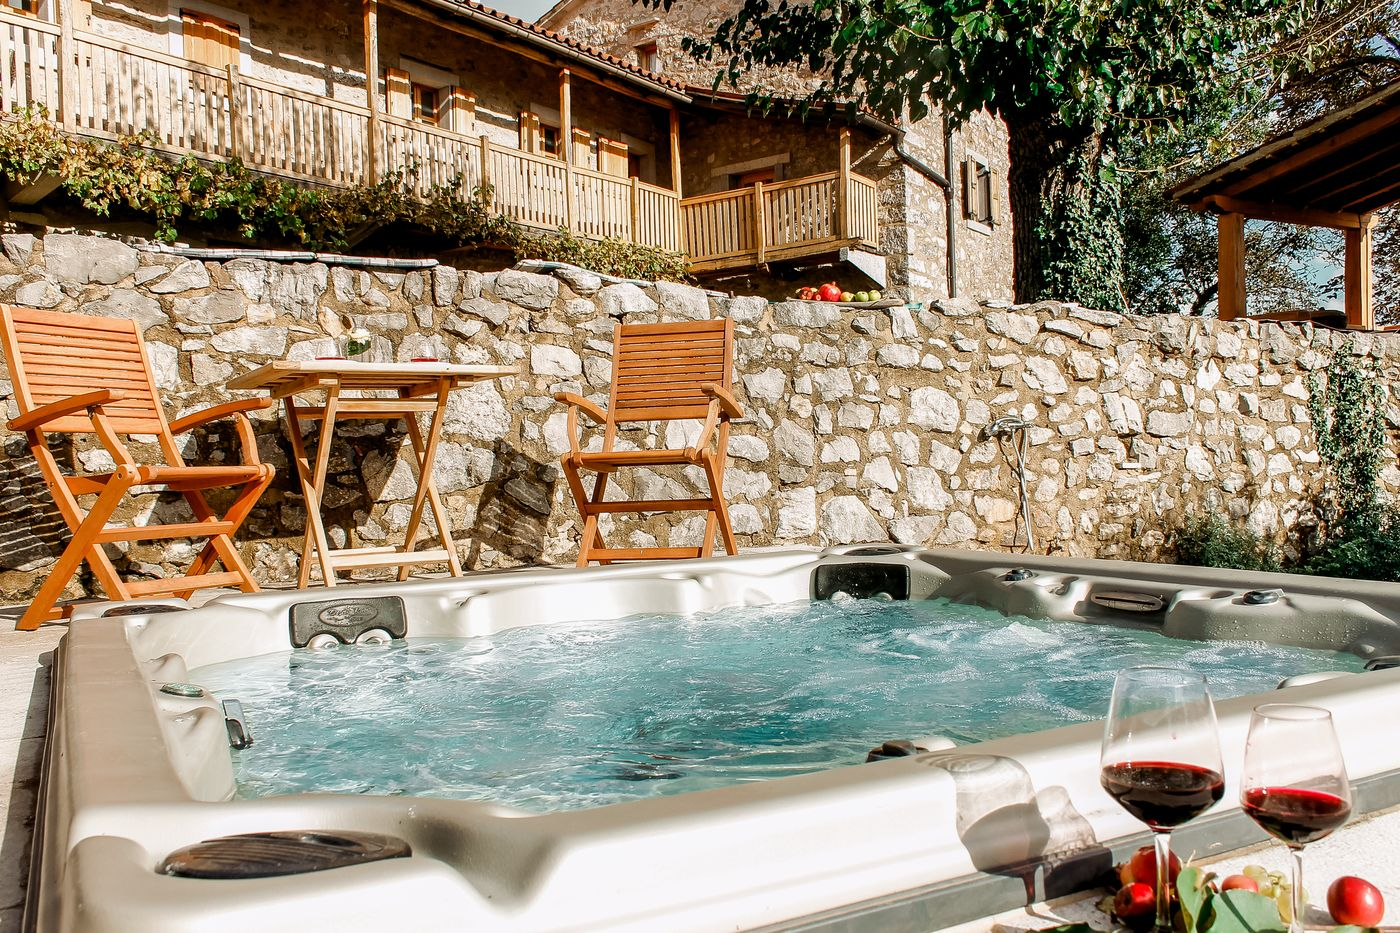 Outdoors Jacuzzi Asa Residence Private Villa Kras Slovenia